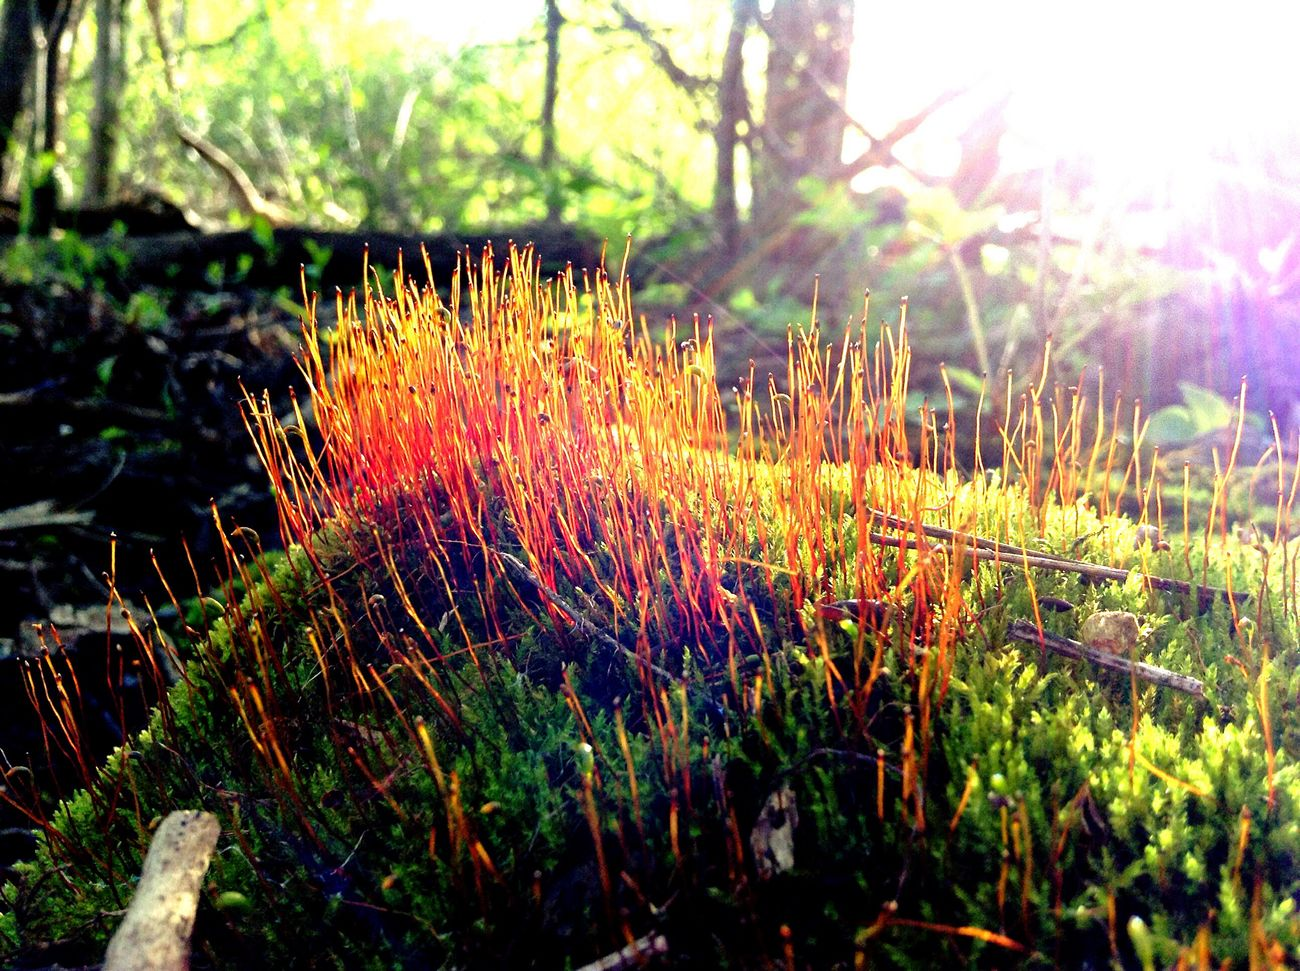 Moss Seeding Moss Forest Photography Forest Floor Foreground Perspective Light Rays Taking Photos EyeEm Nature Lover EyeEm Best Shots Enjoying Life Check This Out Nature Nature Photography The Great Outdoors - 2016 EyeEm Awards